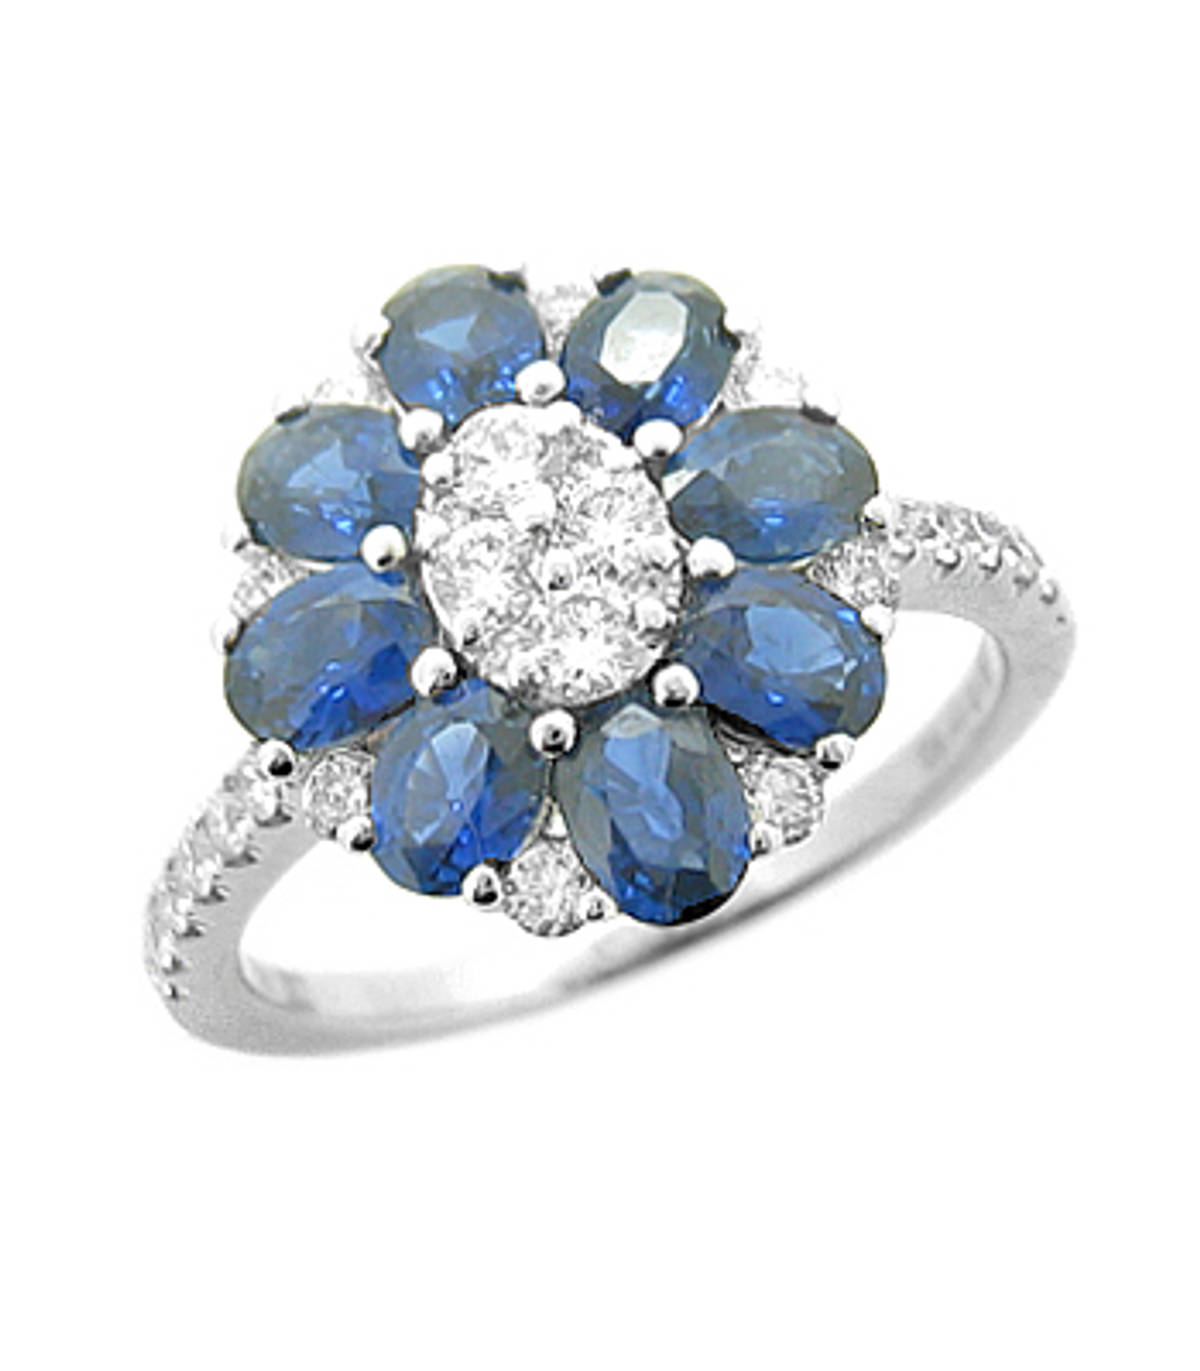 Sapphire and diamond cluster ringPictured item: sapphire: total 1.61ct/diamonds: total 0.49ct set in 18k white gold